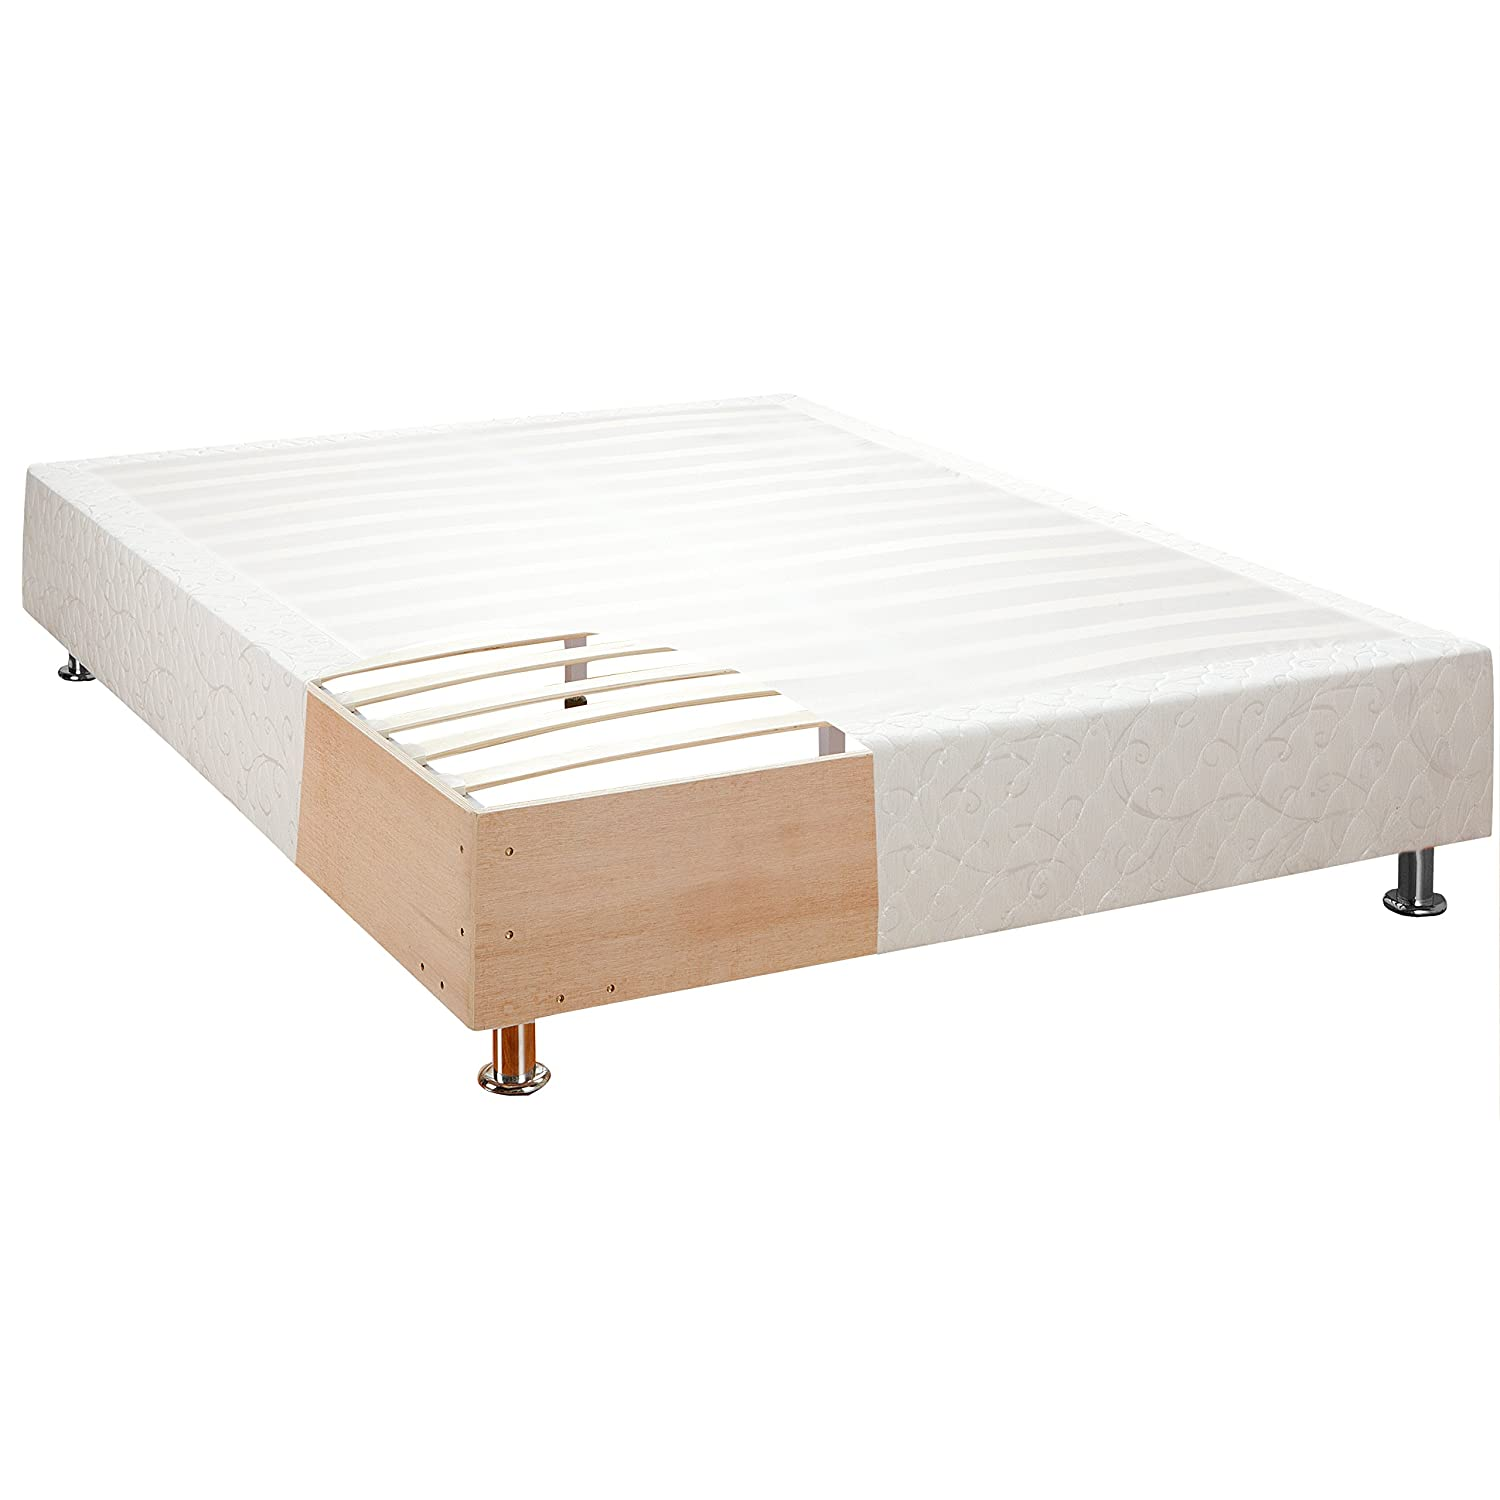 beds with size storage queen of mattress set platform bedroom twin metal full bed double frame